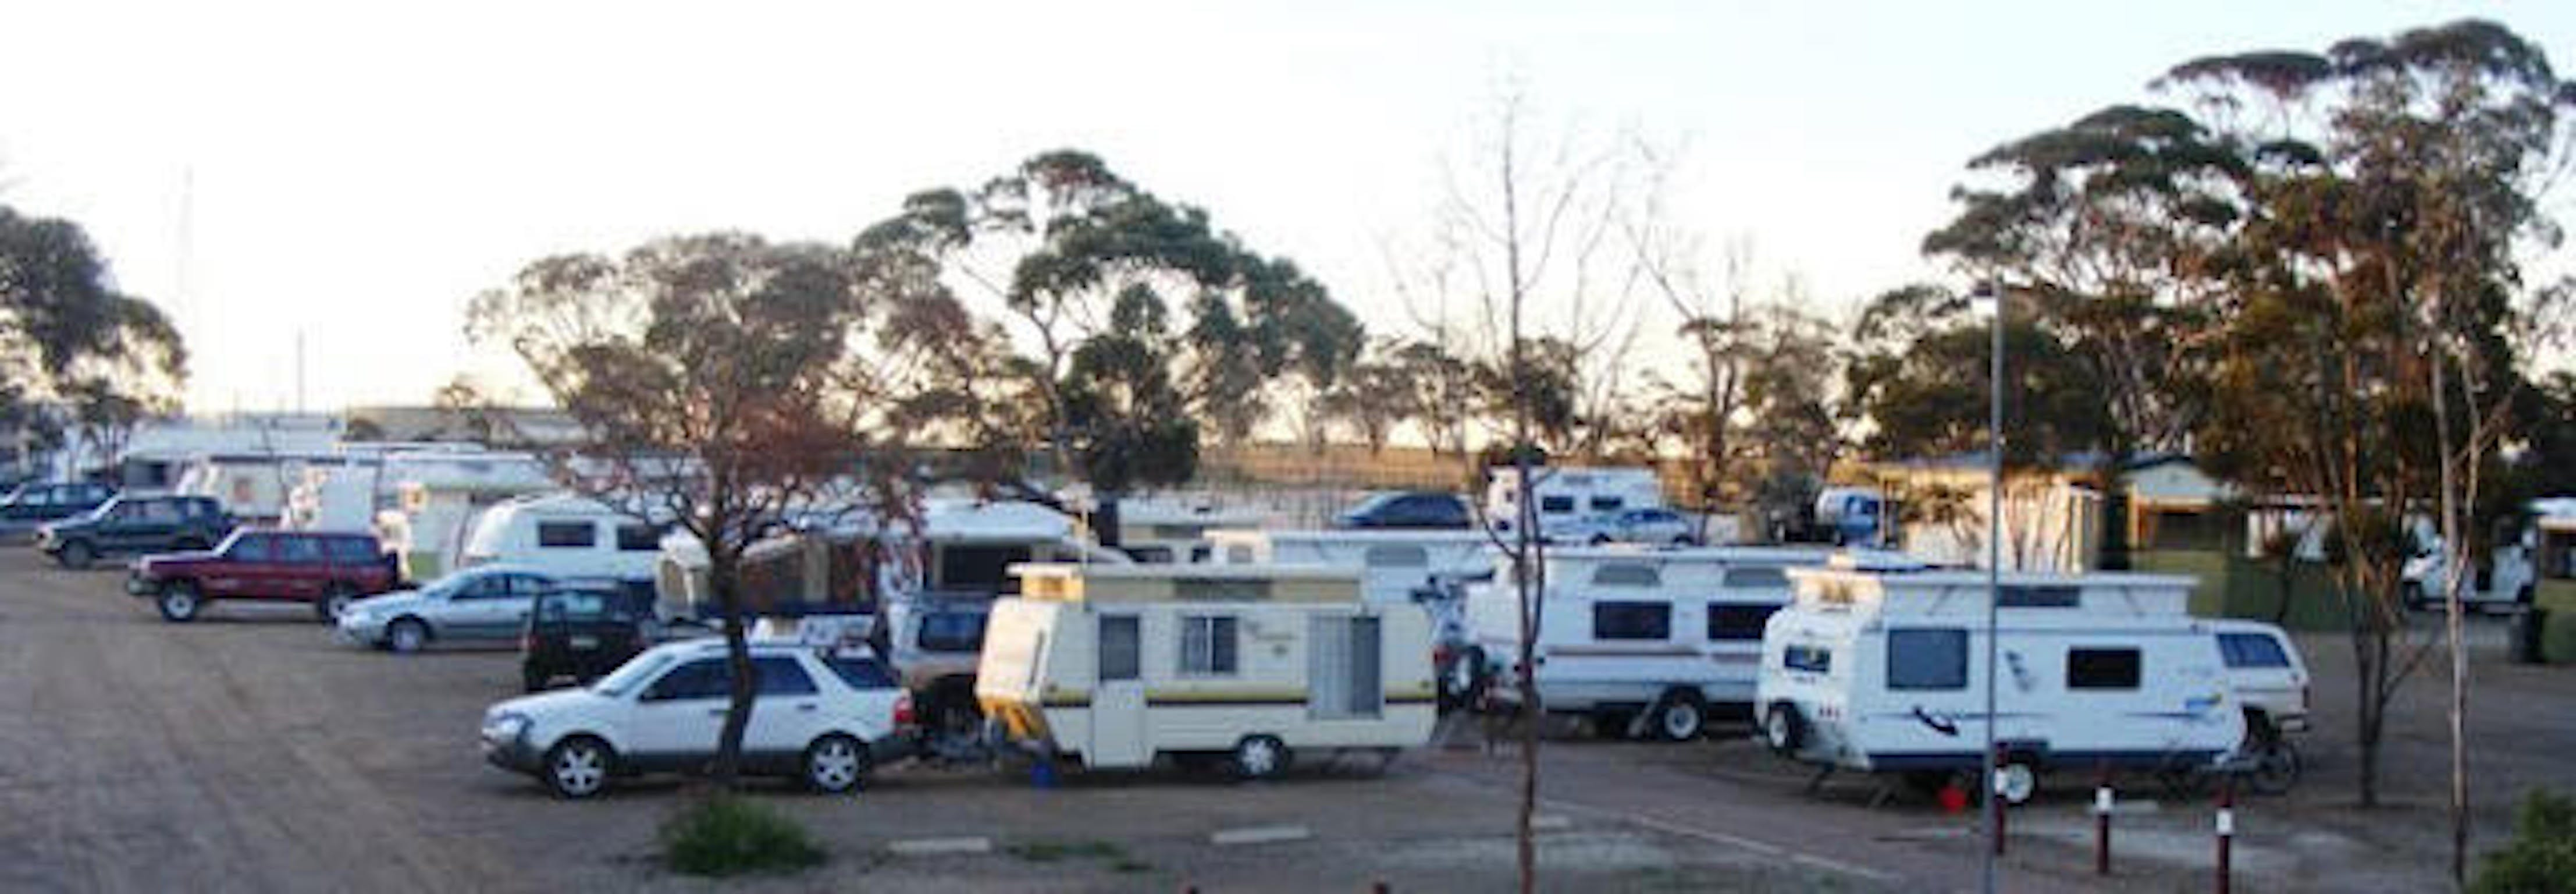 Woomera Traveller's Village and Caravan Park - Accommodation Sunshine Coast